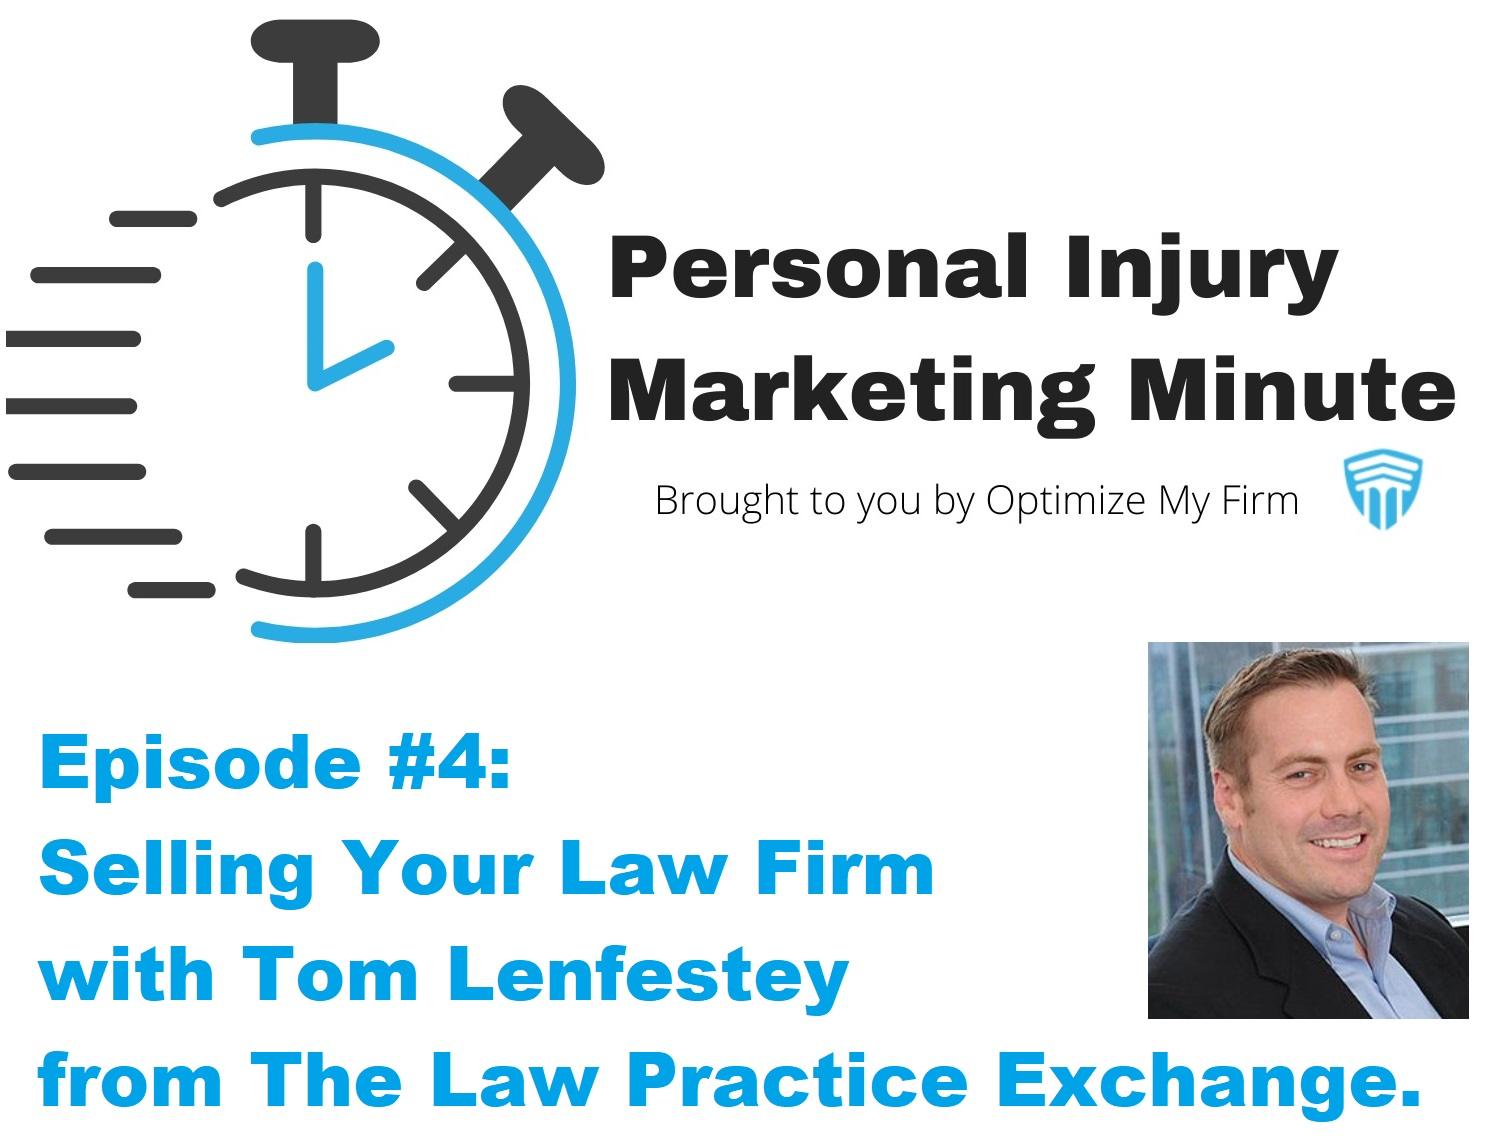 Selling Your Law Firm - Personal Injury Marketing Minute #4 - OptimizeMyFirm.com